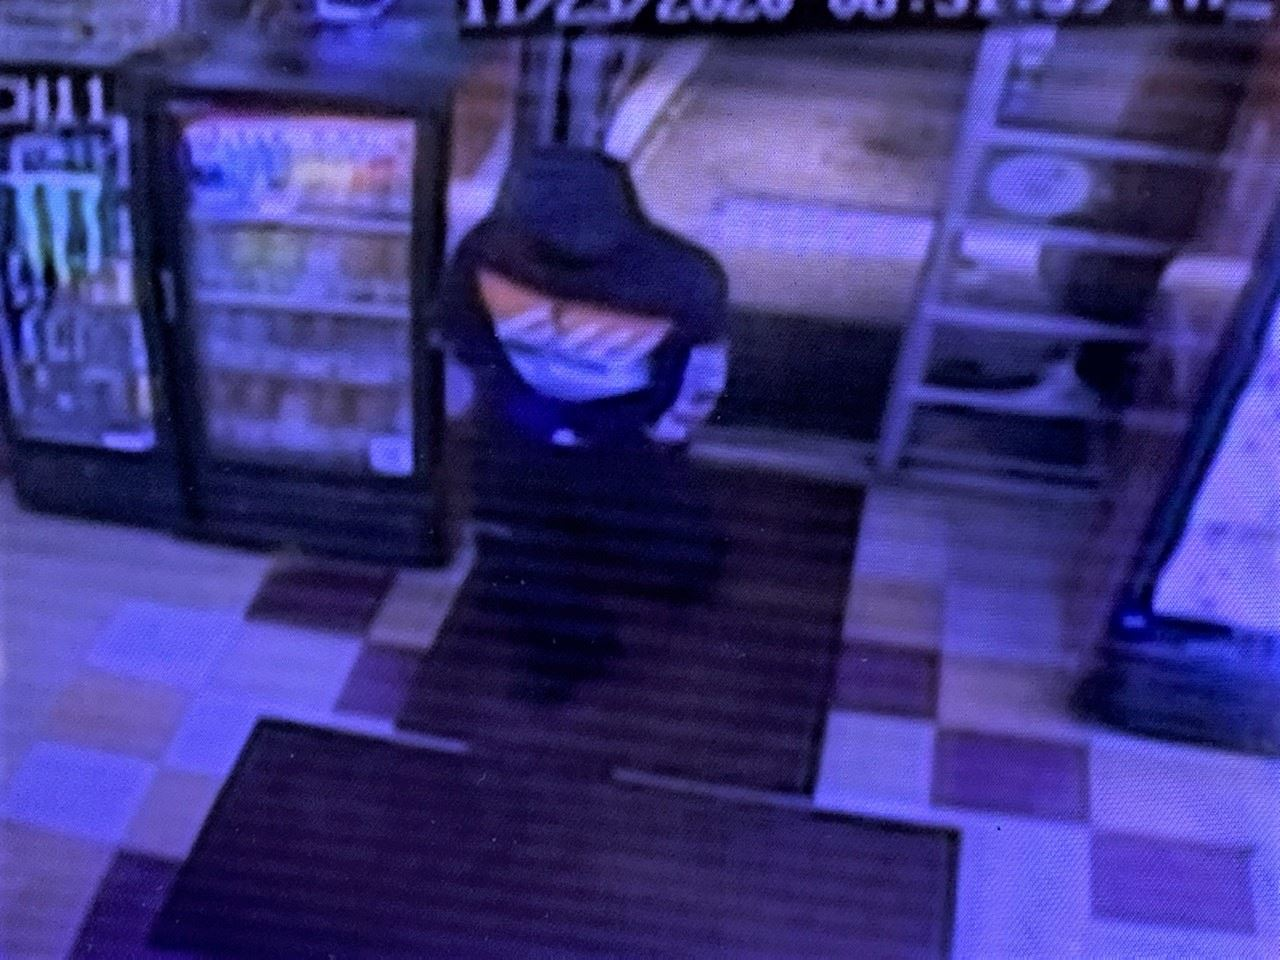 In and Out Robbery Suspect 2 11-23-20